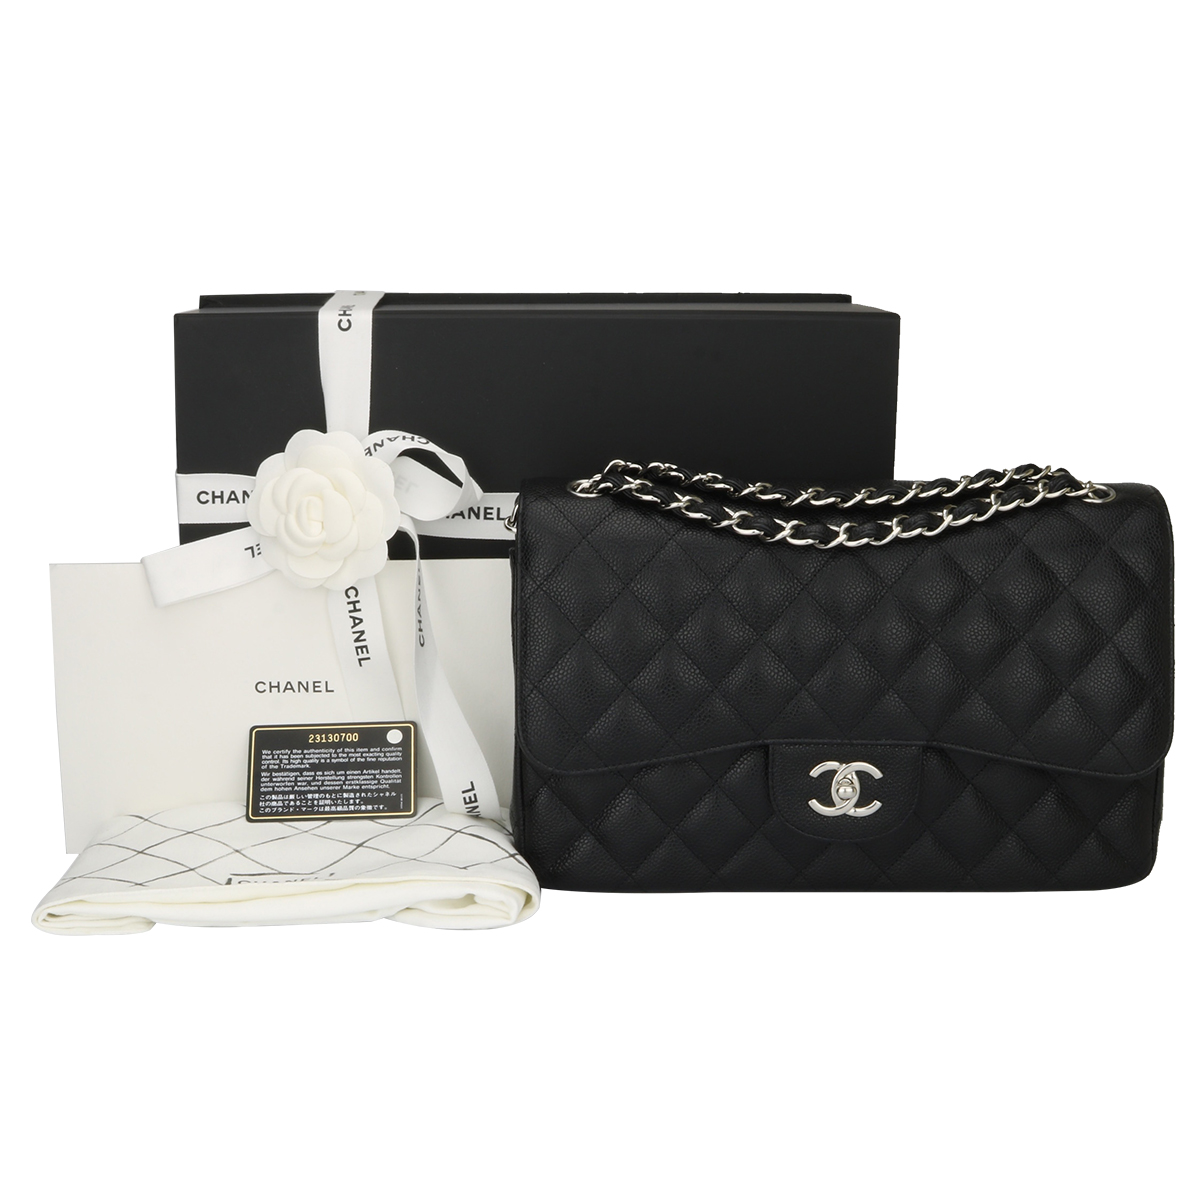 4e6c0025d832f4 Chanel Classic Flap Bag Caviar Price 2017 | Stanford Center for ...